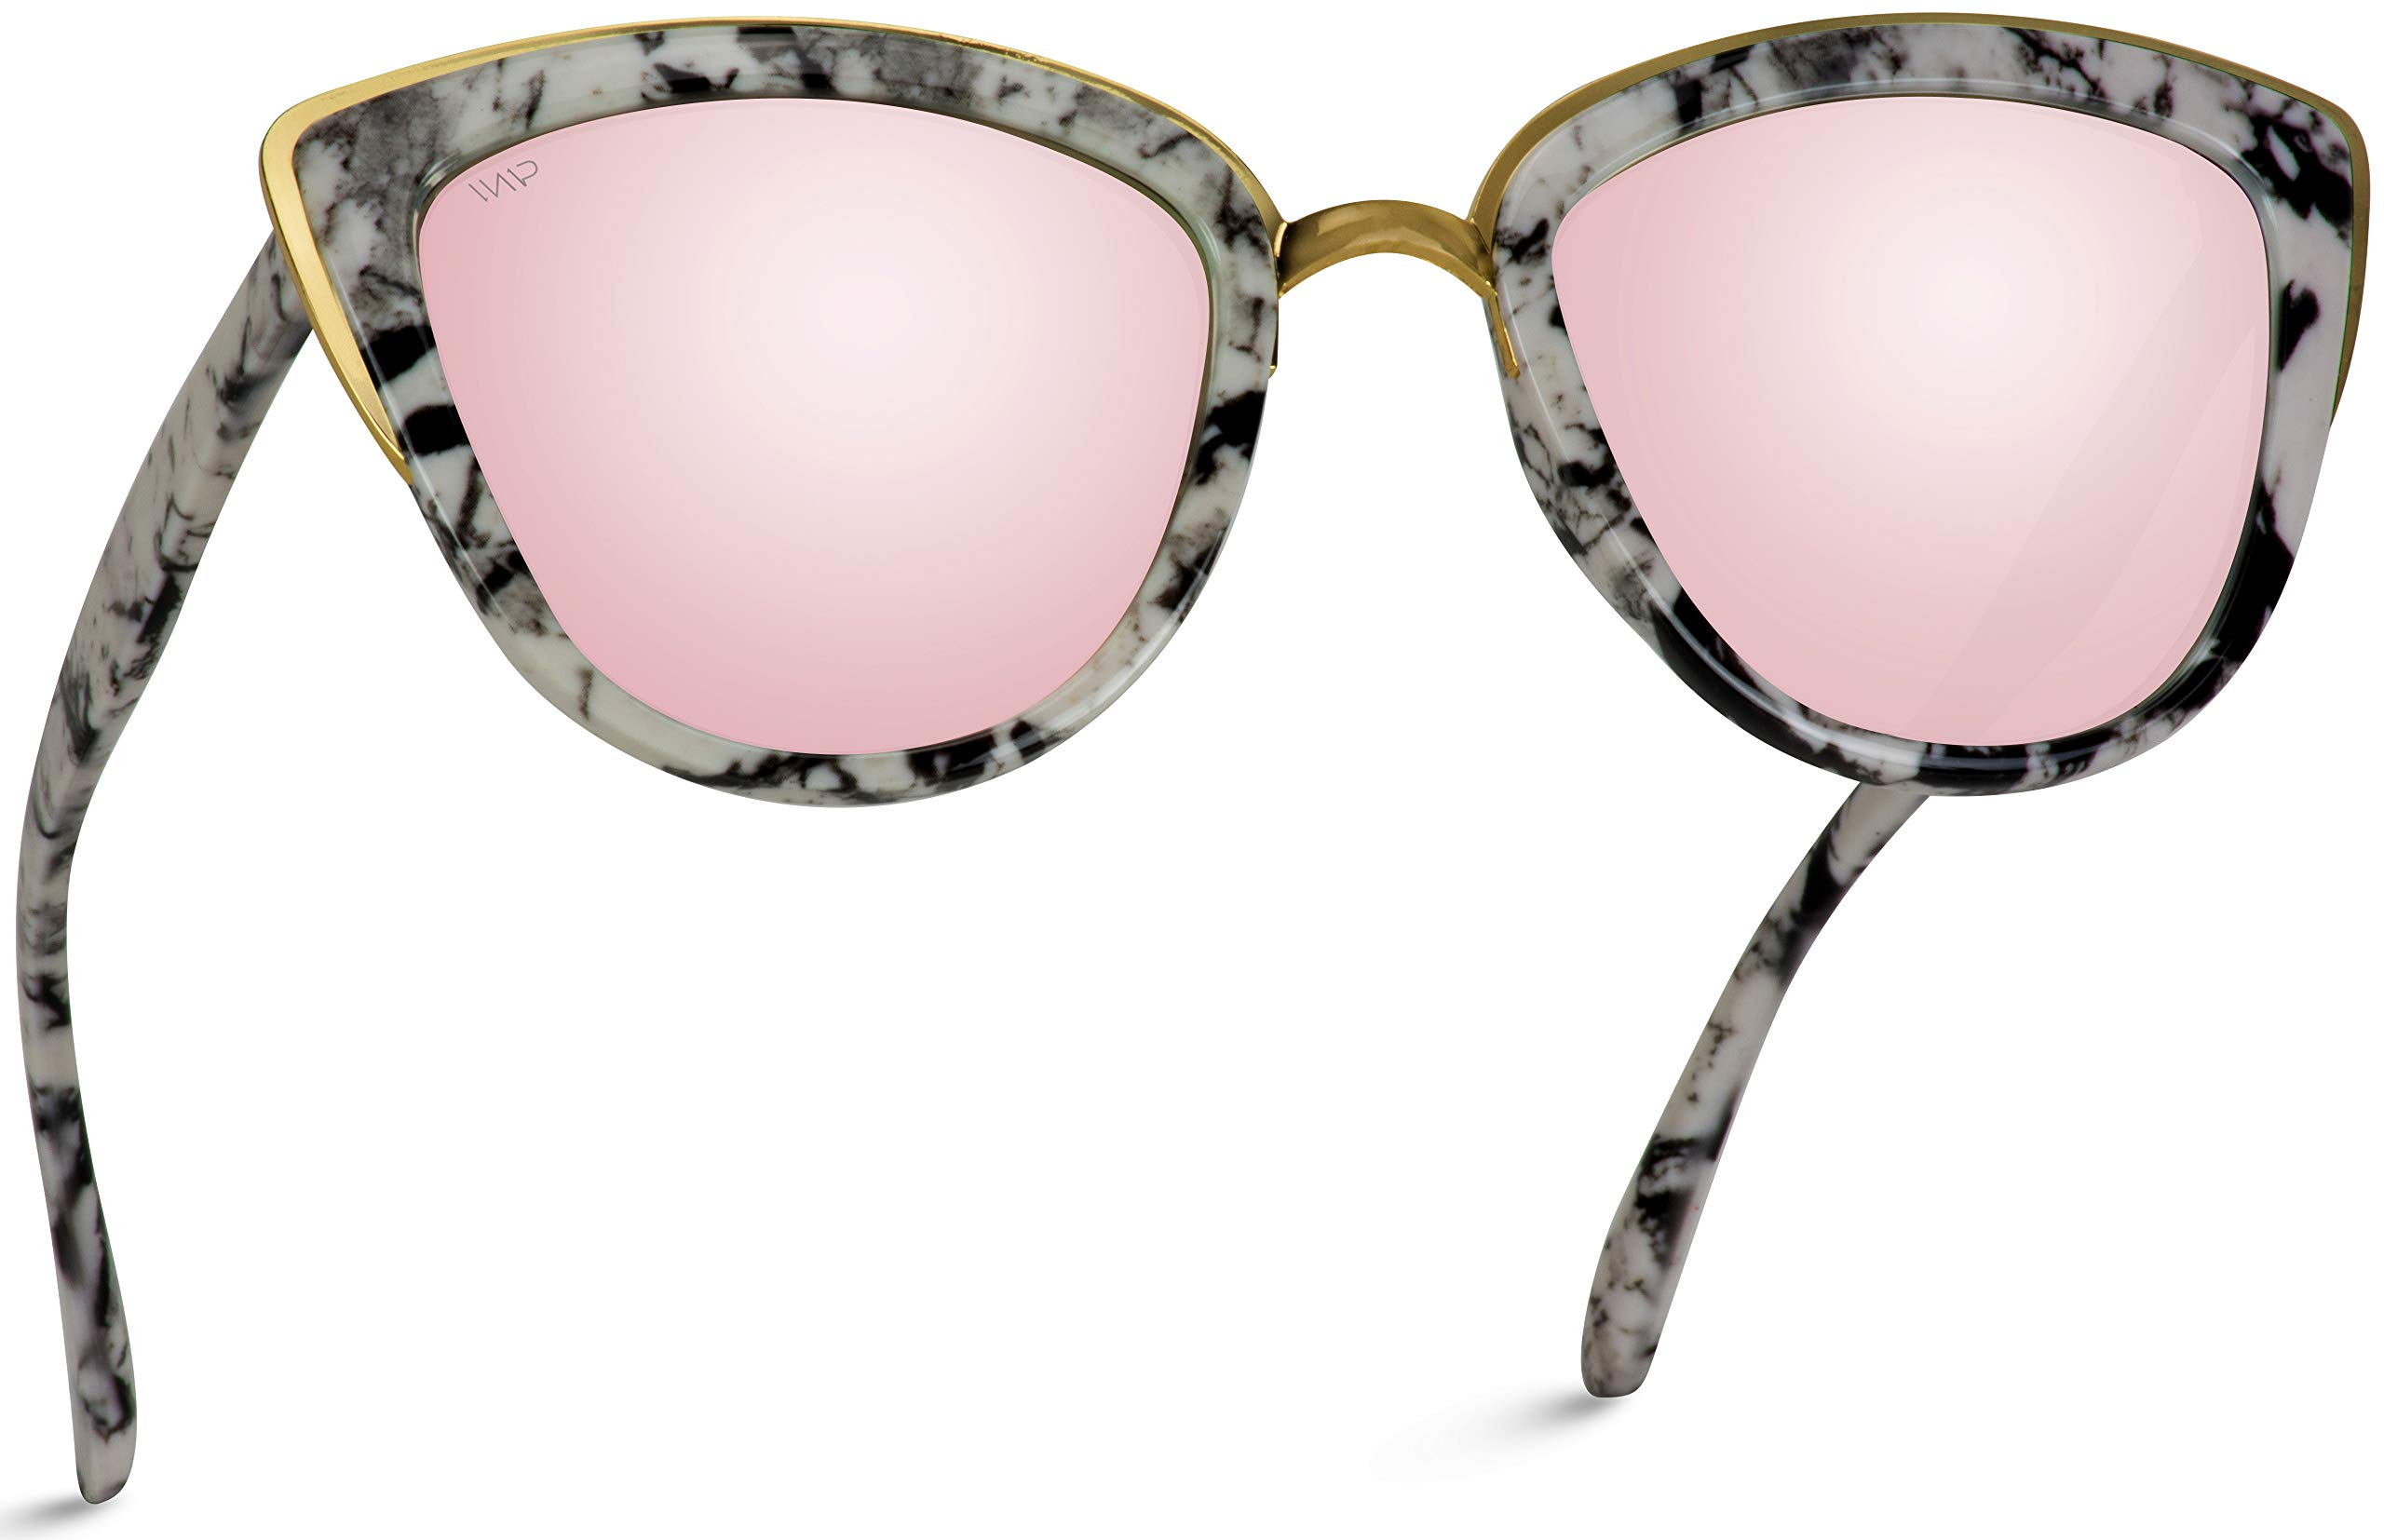 Womens Cat Eye Mirrored Reflective Lenses Oversized Cateyes Sunglasses (Marble White Frame/Mirror Pink Lens, 54) by WearMe Pro